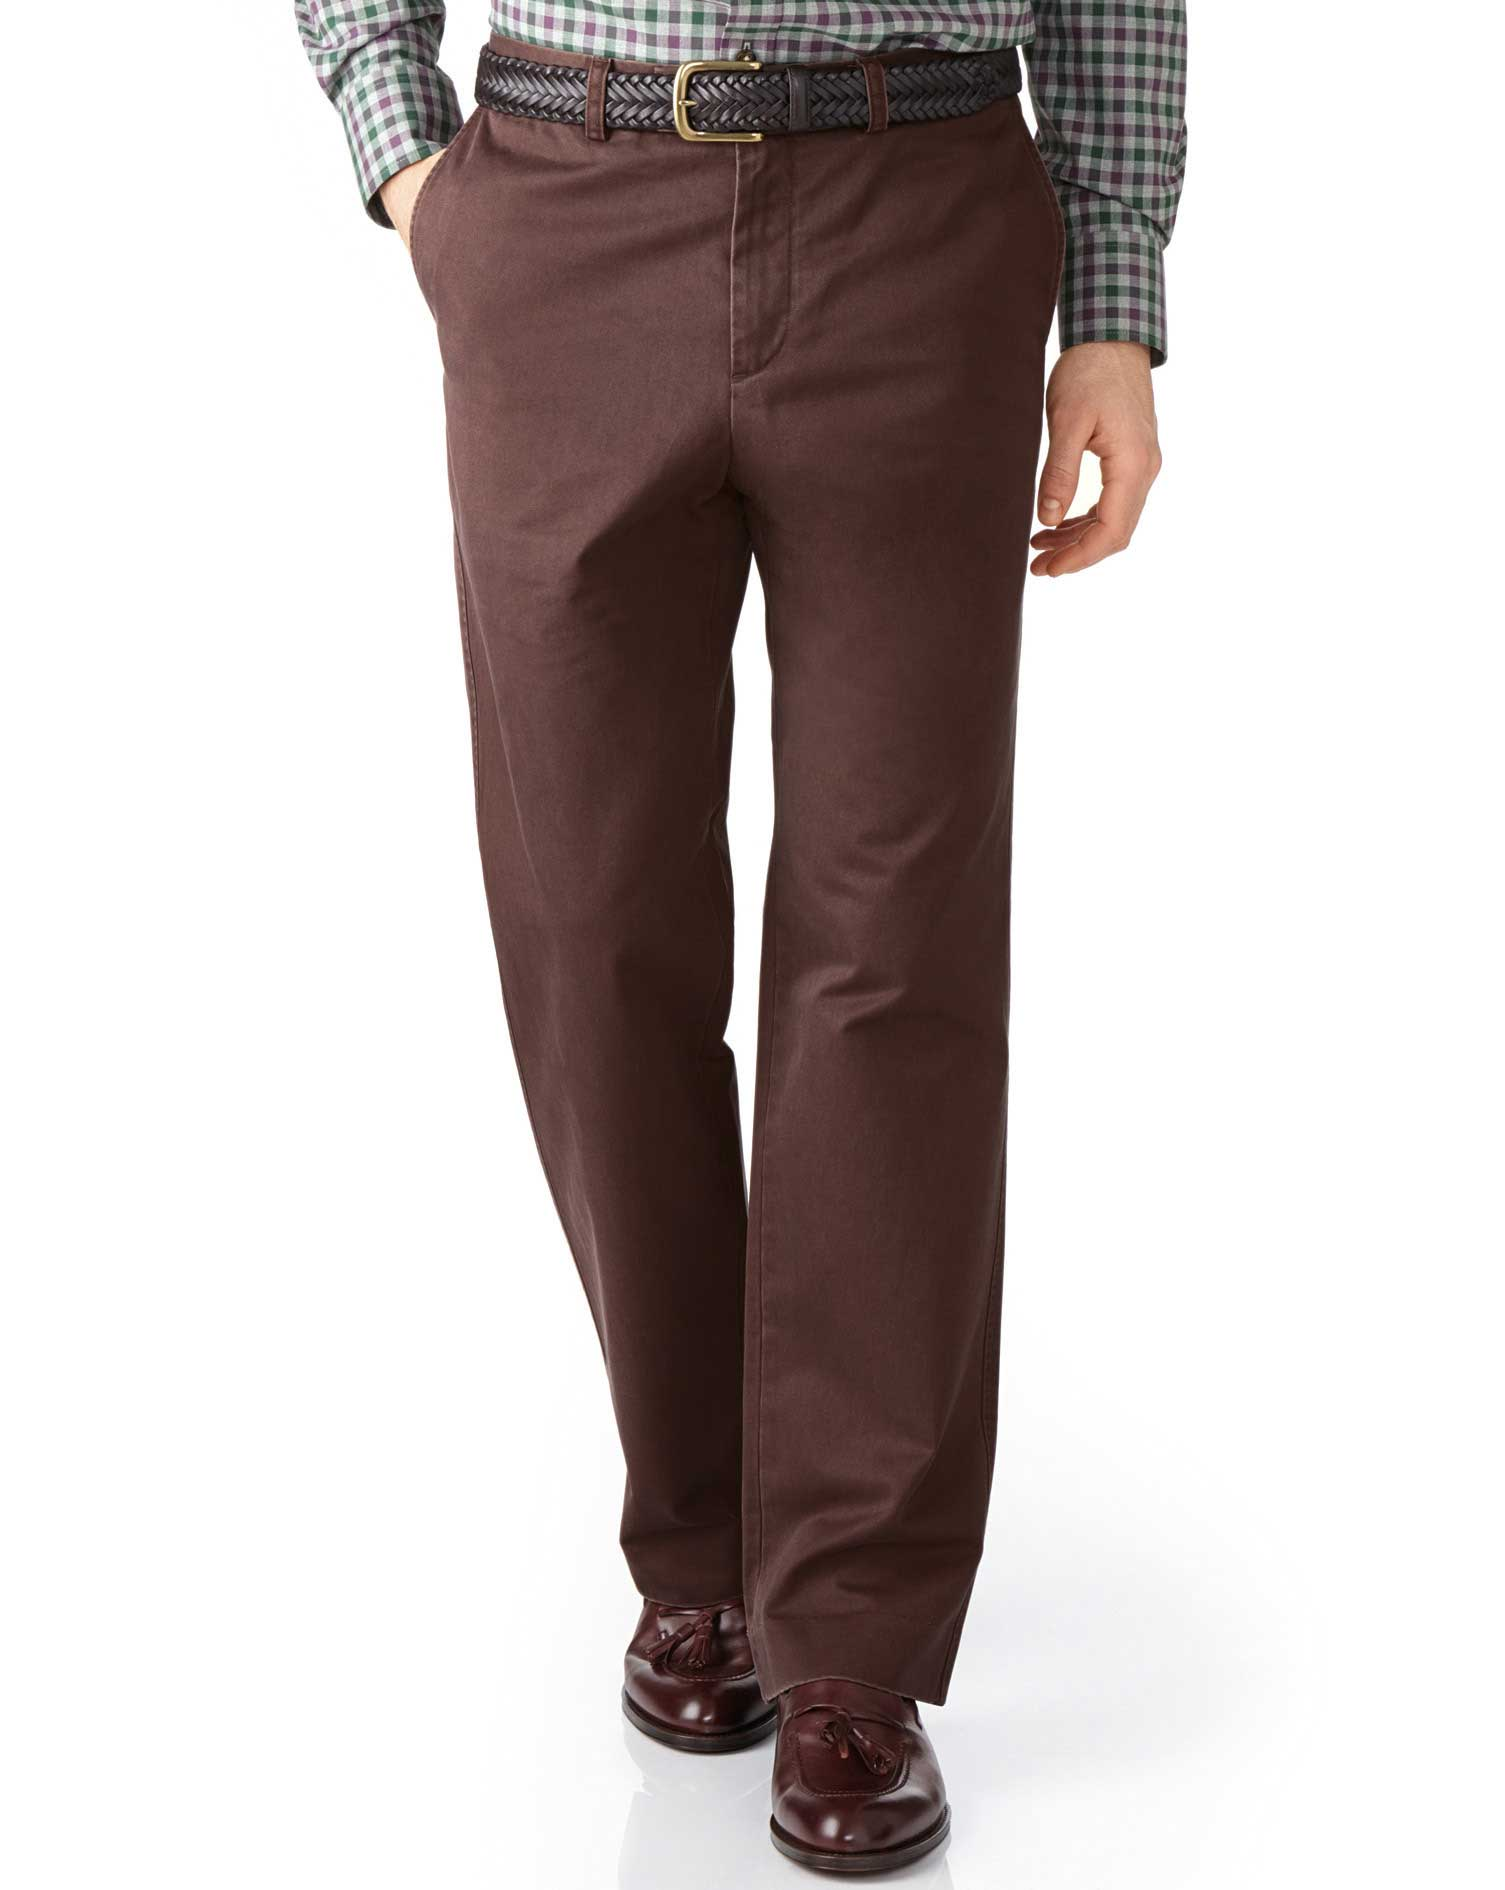 Brown Classic Fit Flat Front Cotton Chino Trousers Size W44 L38 by Charles Tyrwhitt